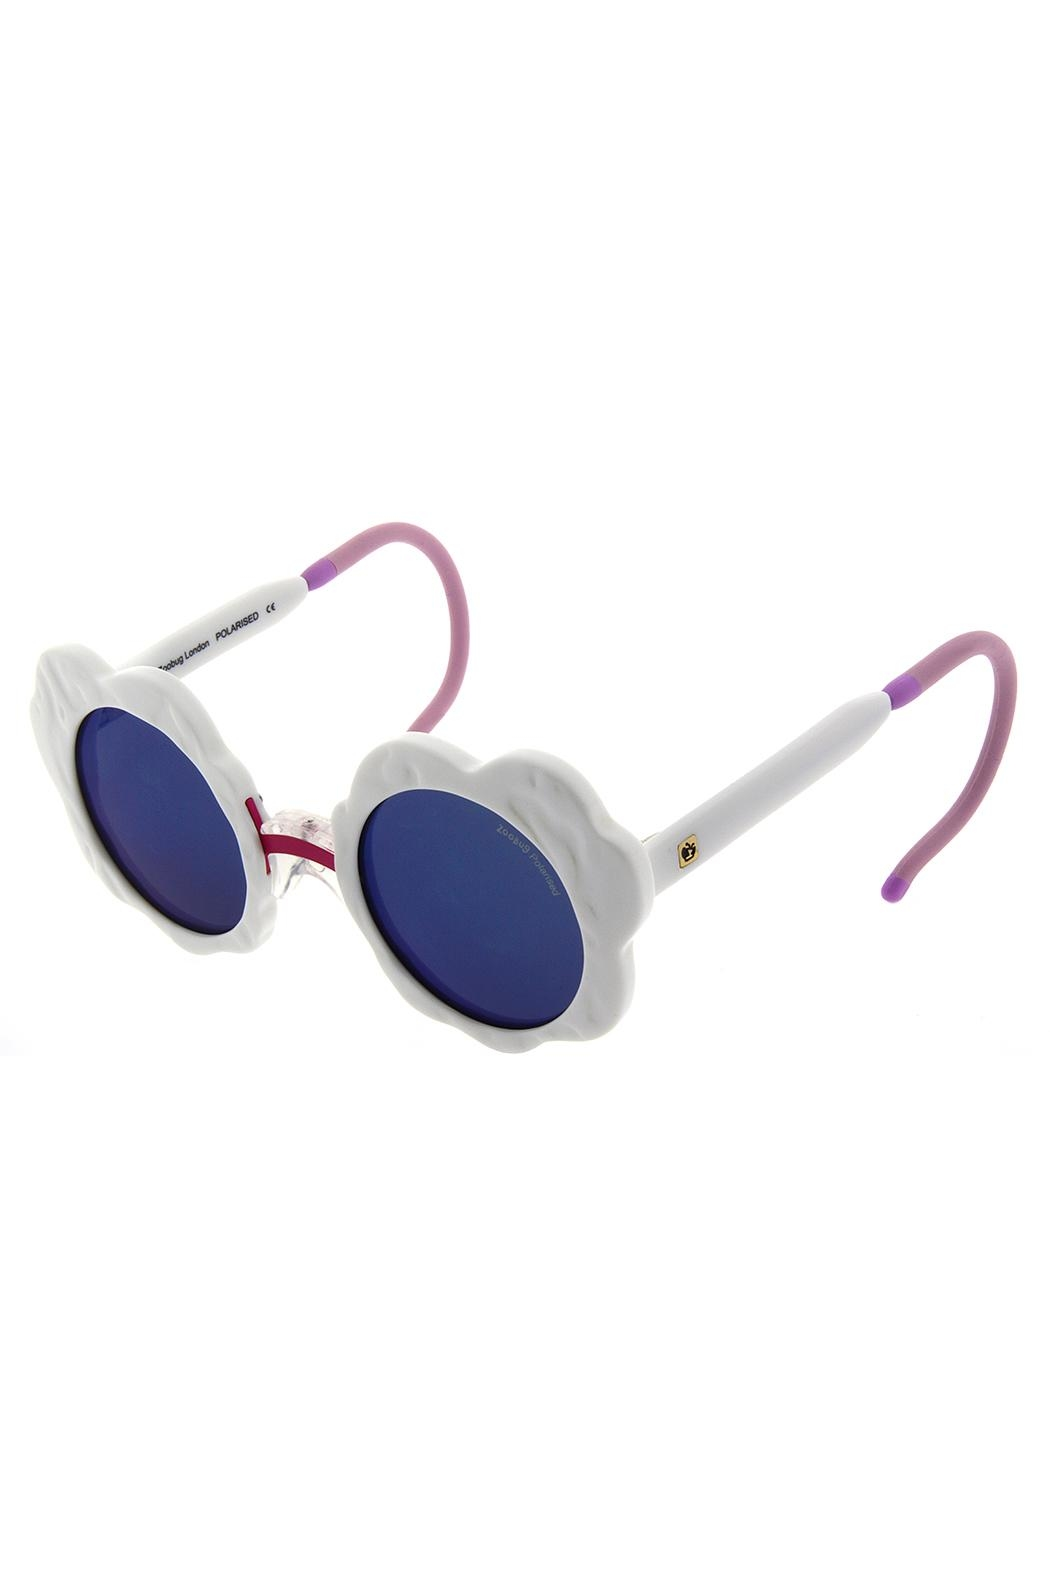 ZooBug White Daisy Sunglasses - Main Image